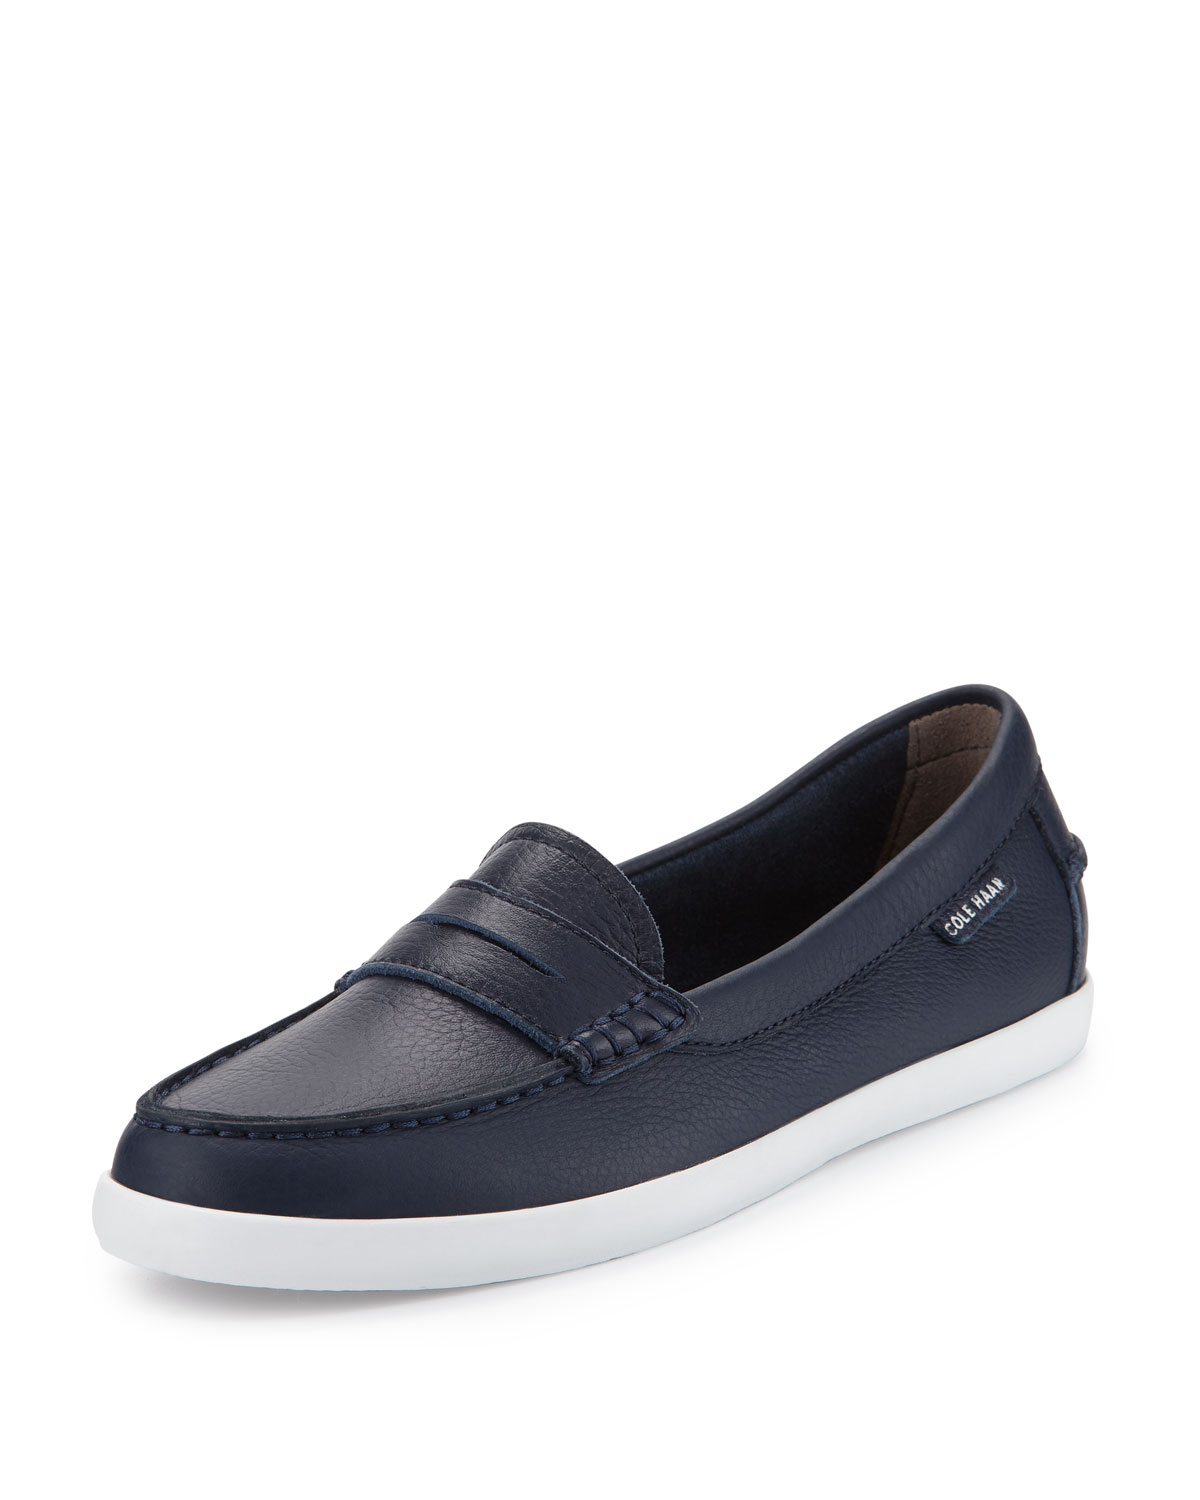 c09f31f1304 Cole Haan Nantucket Leather Loafer